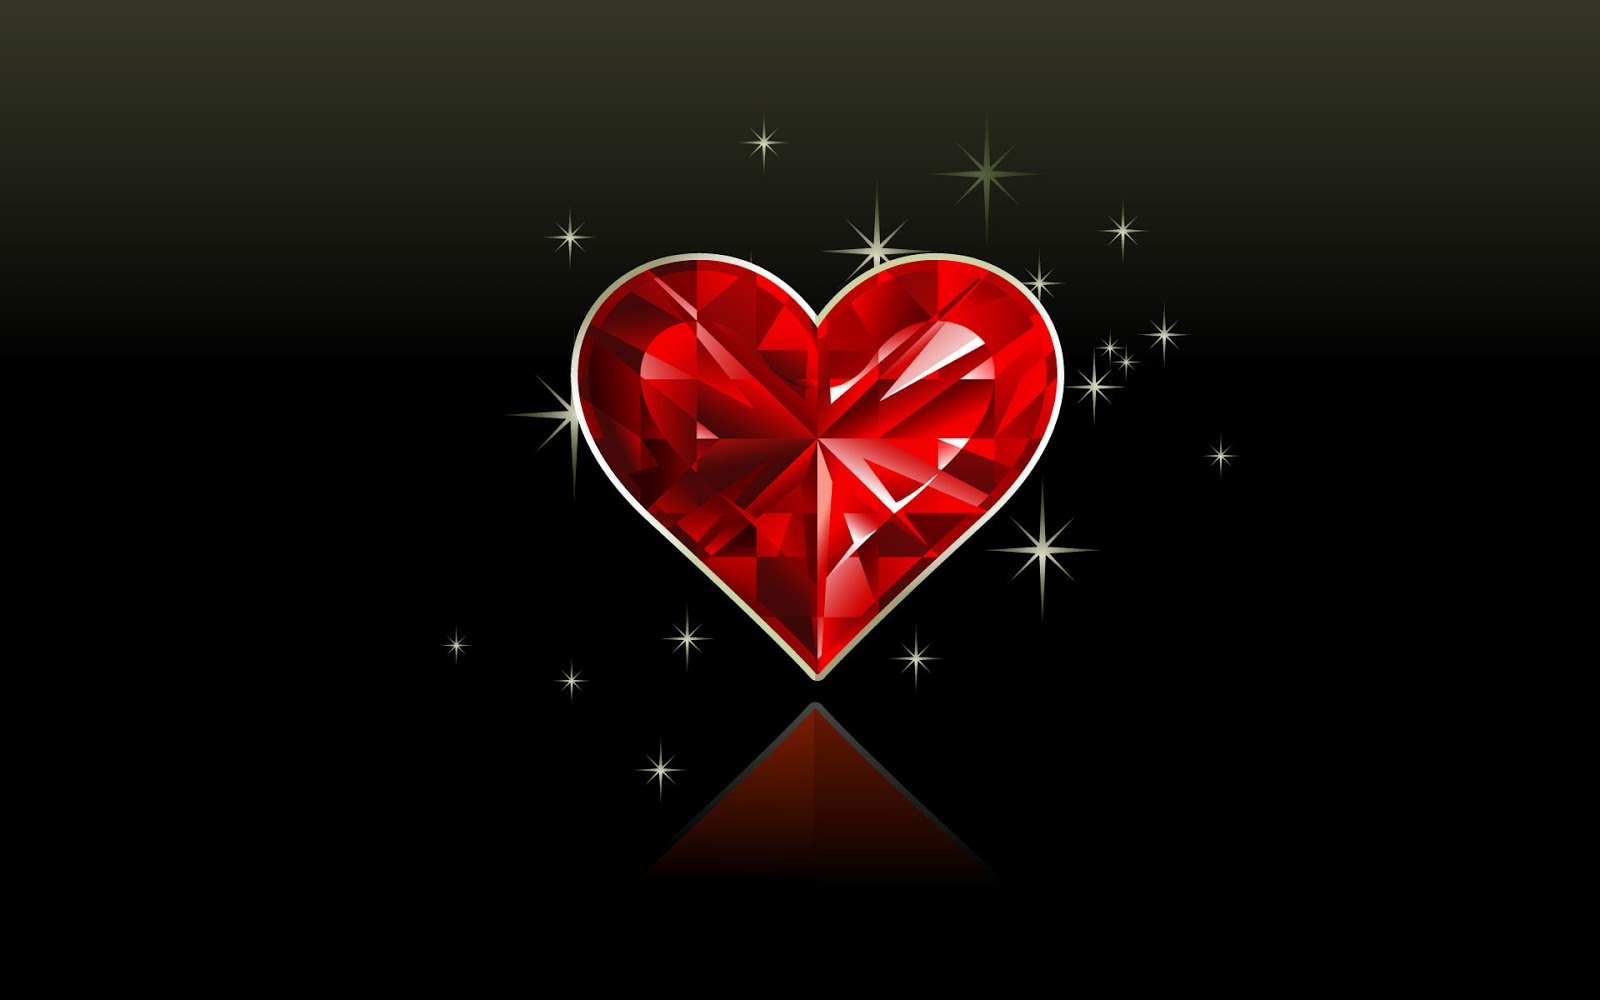 Love Heart Wallpapers | Online Quotes Gallery